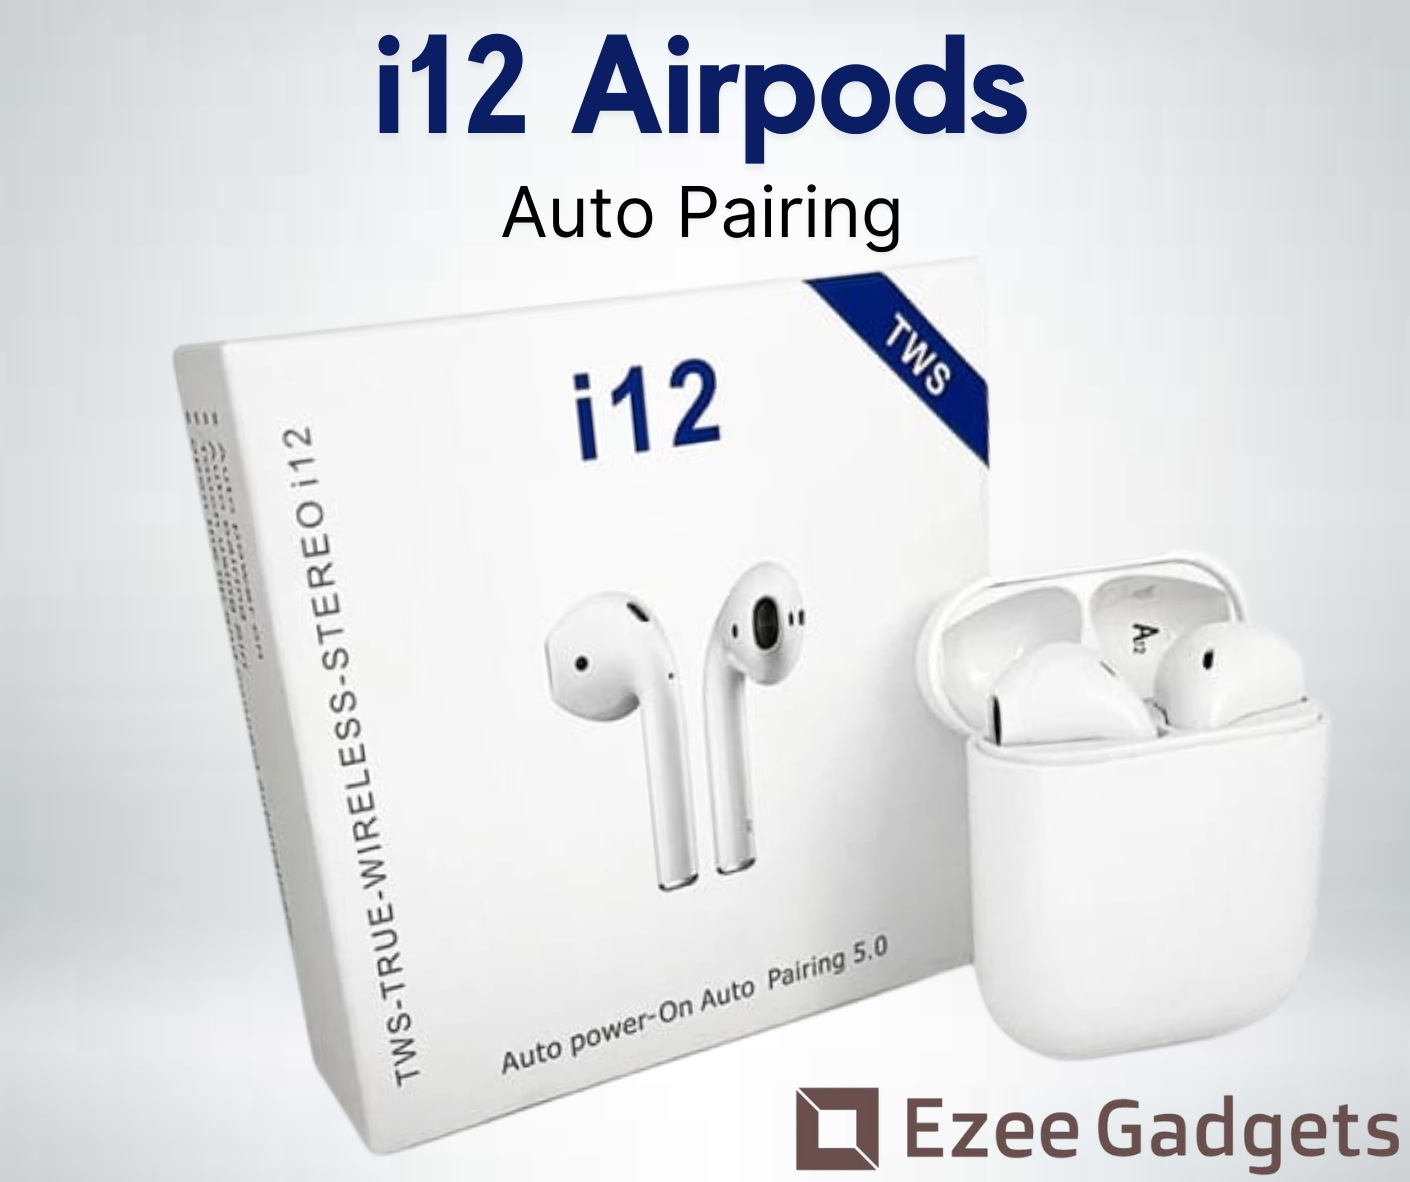 [ Exclusives ] i12 TWS Wireless Twins Bluetooth V5.0 Ear pods with SENSOR TOUCH. i12 Earbud Headset Sport Stereo Built Mic and High Bass Level Supporting Earphone With Charging Dock For all android and ios devices - white